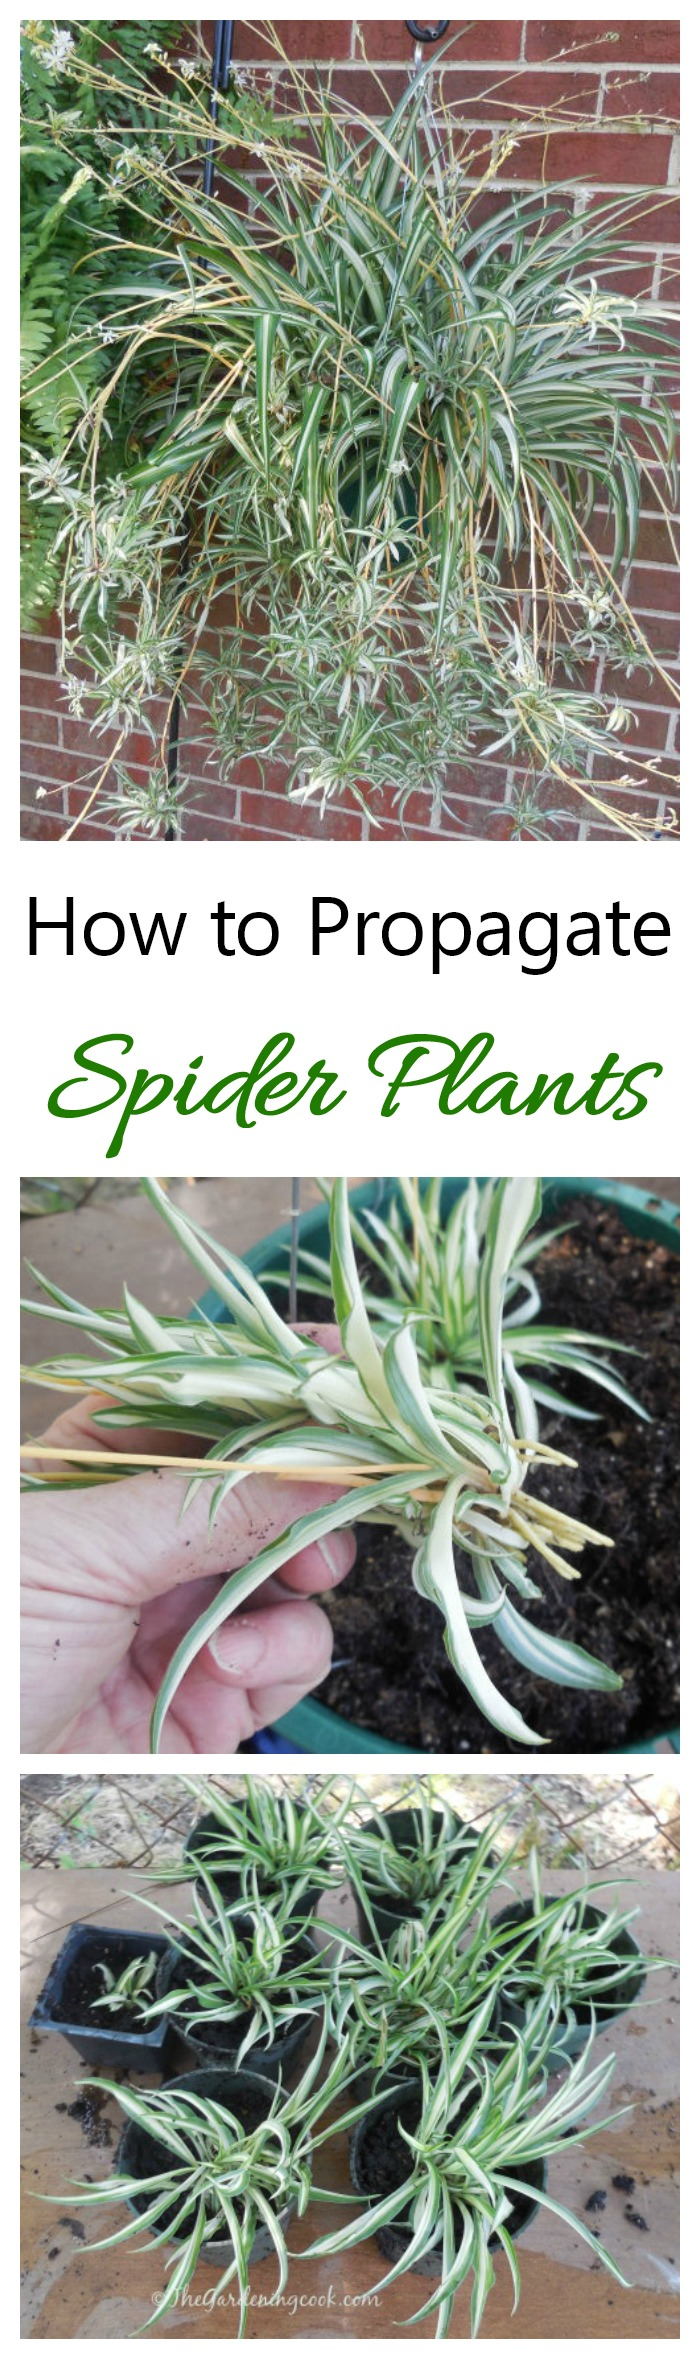 Calmly To Get Plants Learn How To Propagate Spider Plants From Propagate Spider Plants From Ir Babies Gardening Cook Spider Plant Babies When To Cut Spider Plant Babies Soil houzz-03 Spider Plant Babies